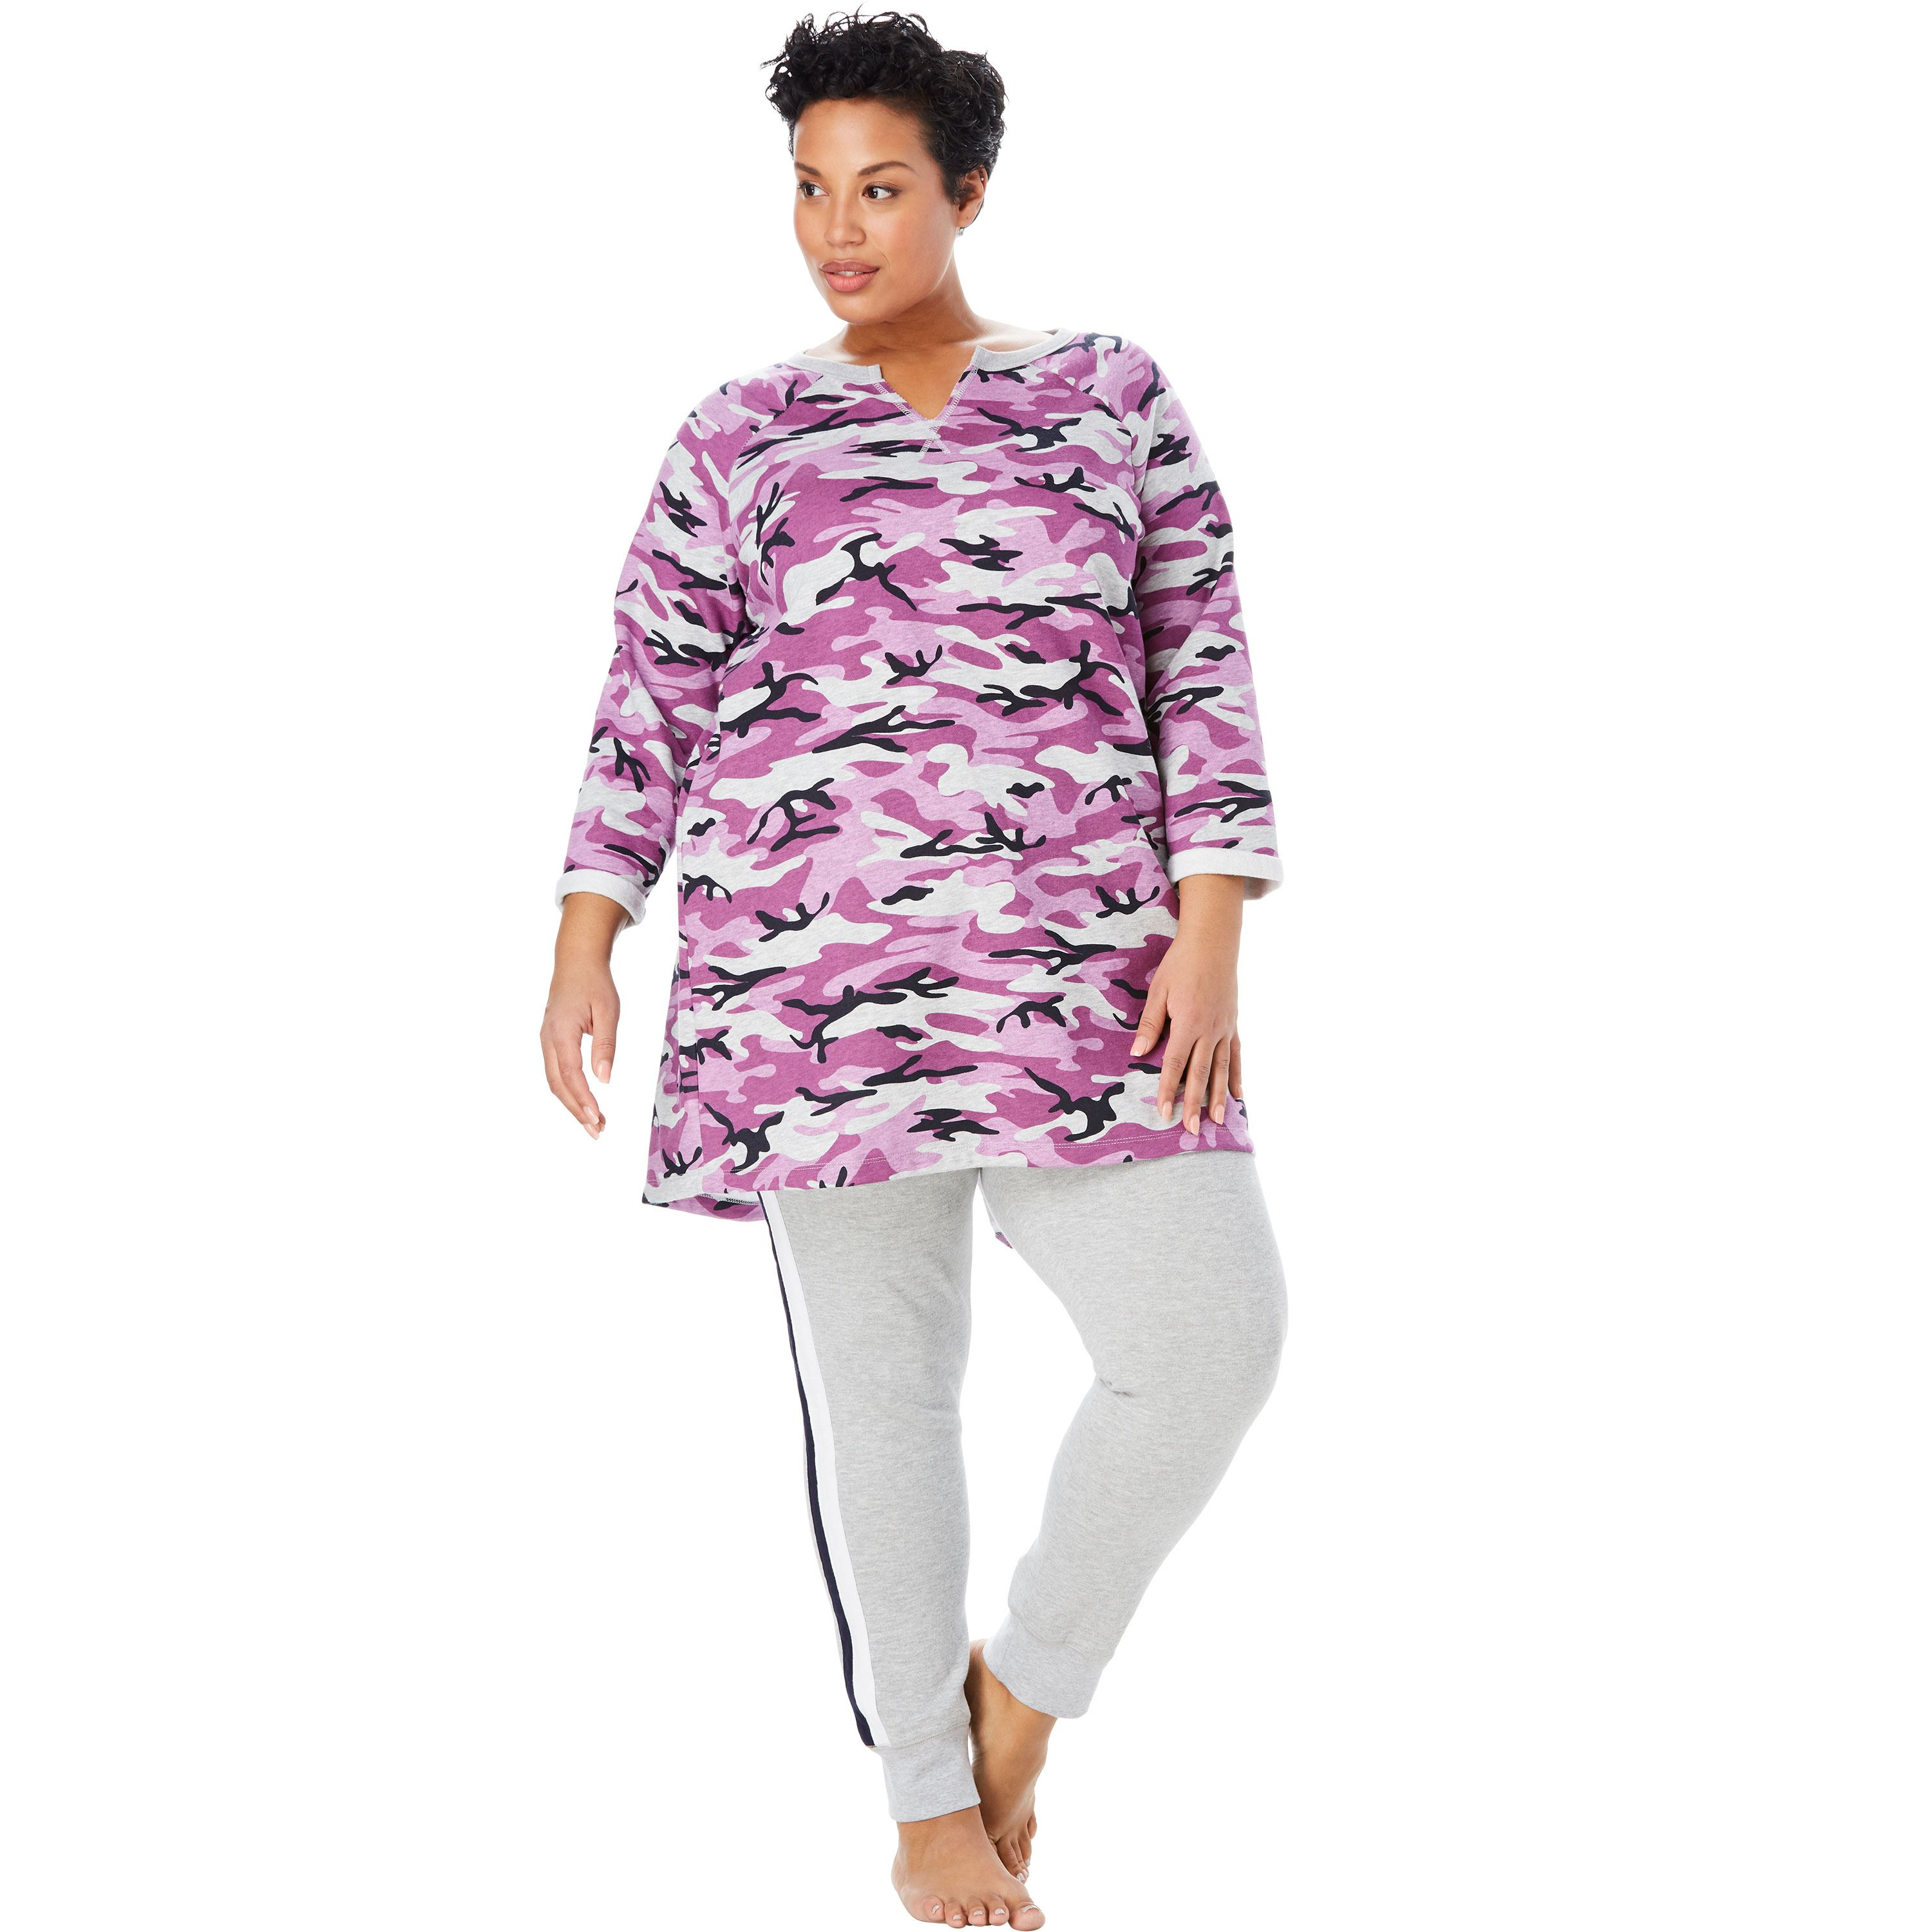 Plus Size Notch Neck Fleece High-low Sweatshirt By Dreams   Co. -  Walmart.com f48fedf04